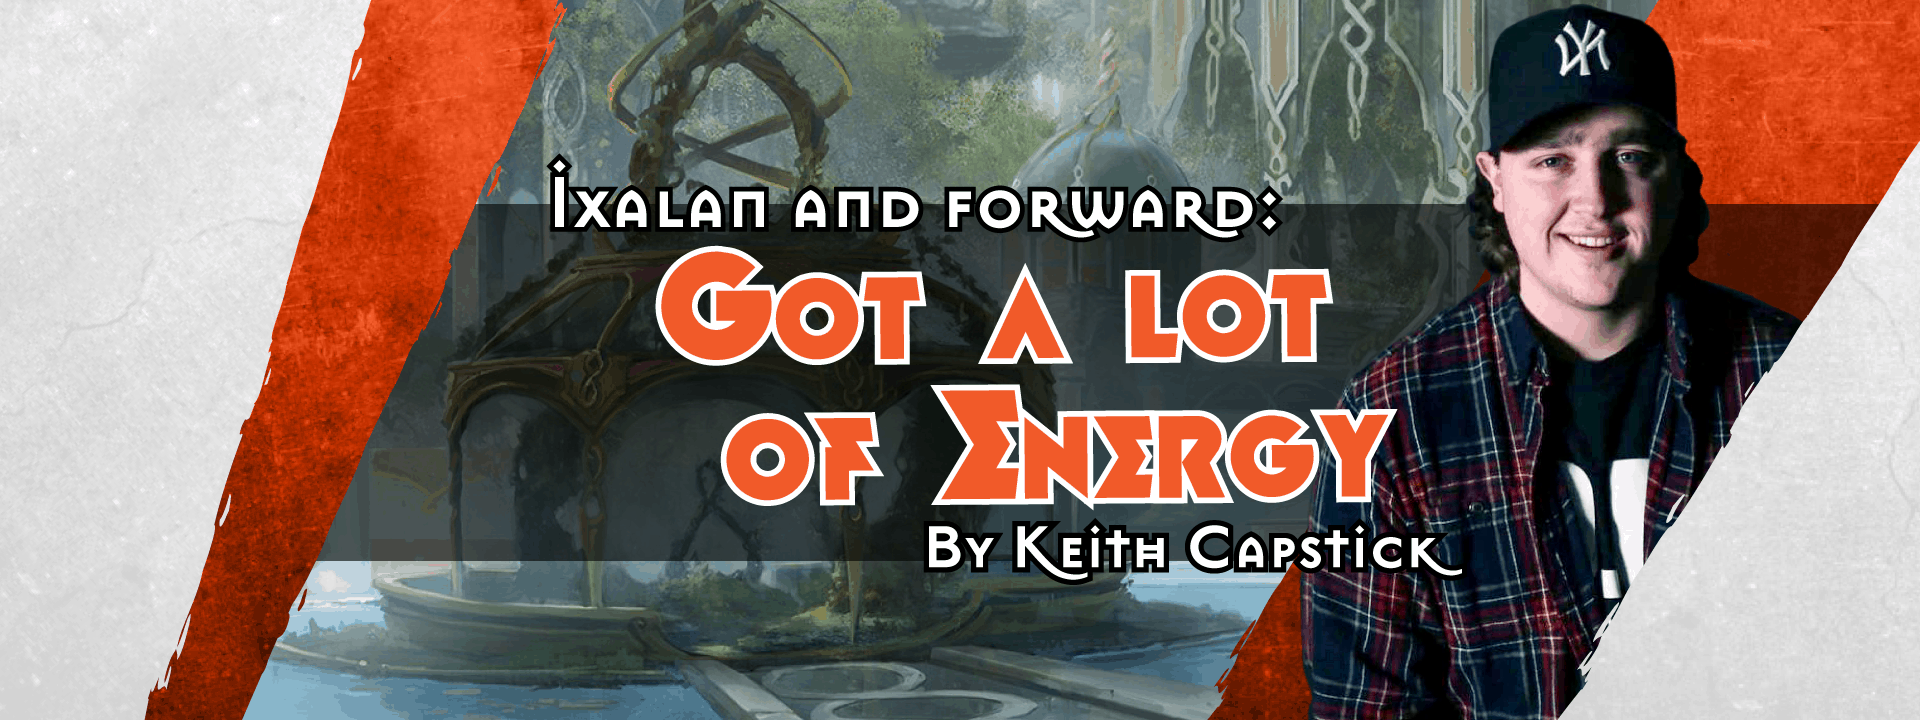 Ixalan and forward: 'Got a lot of Energy'